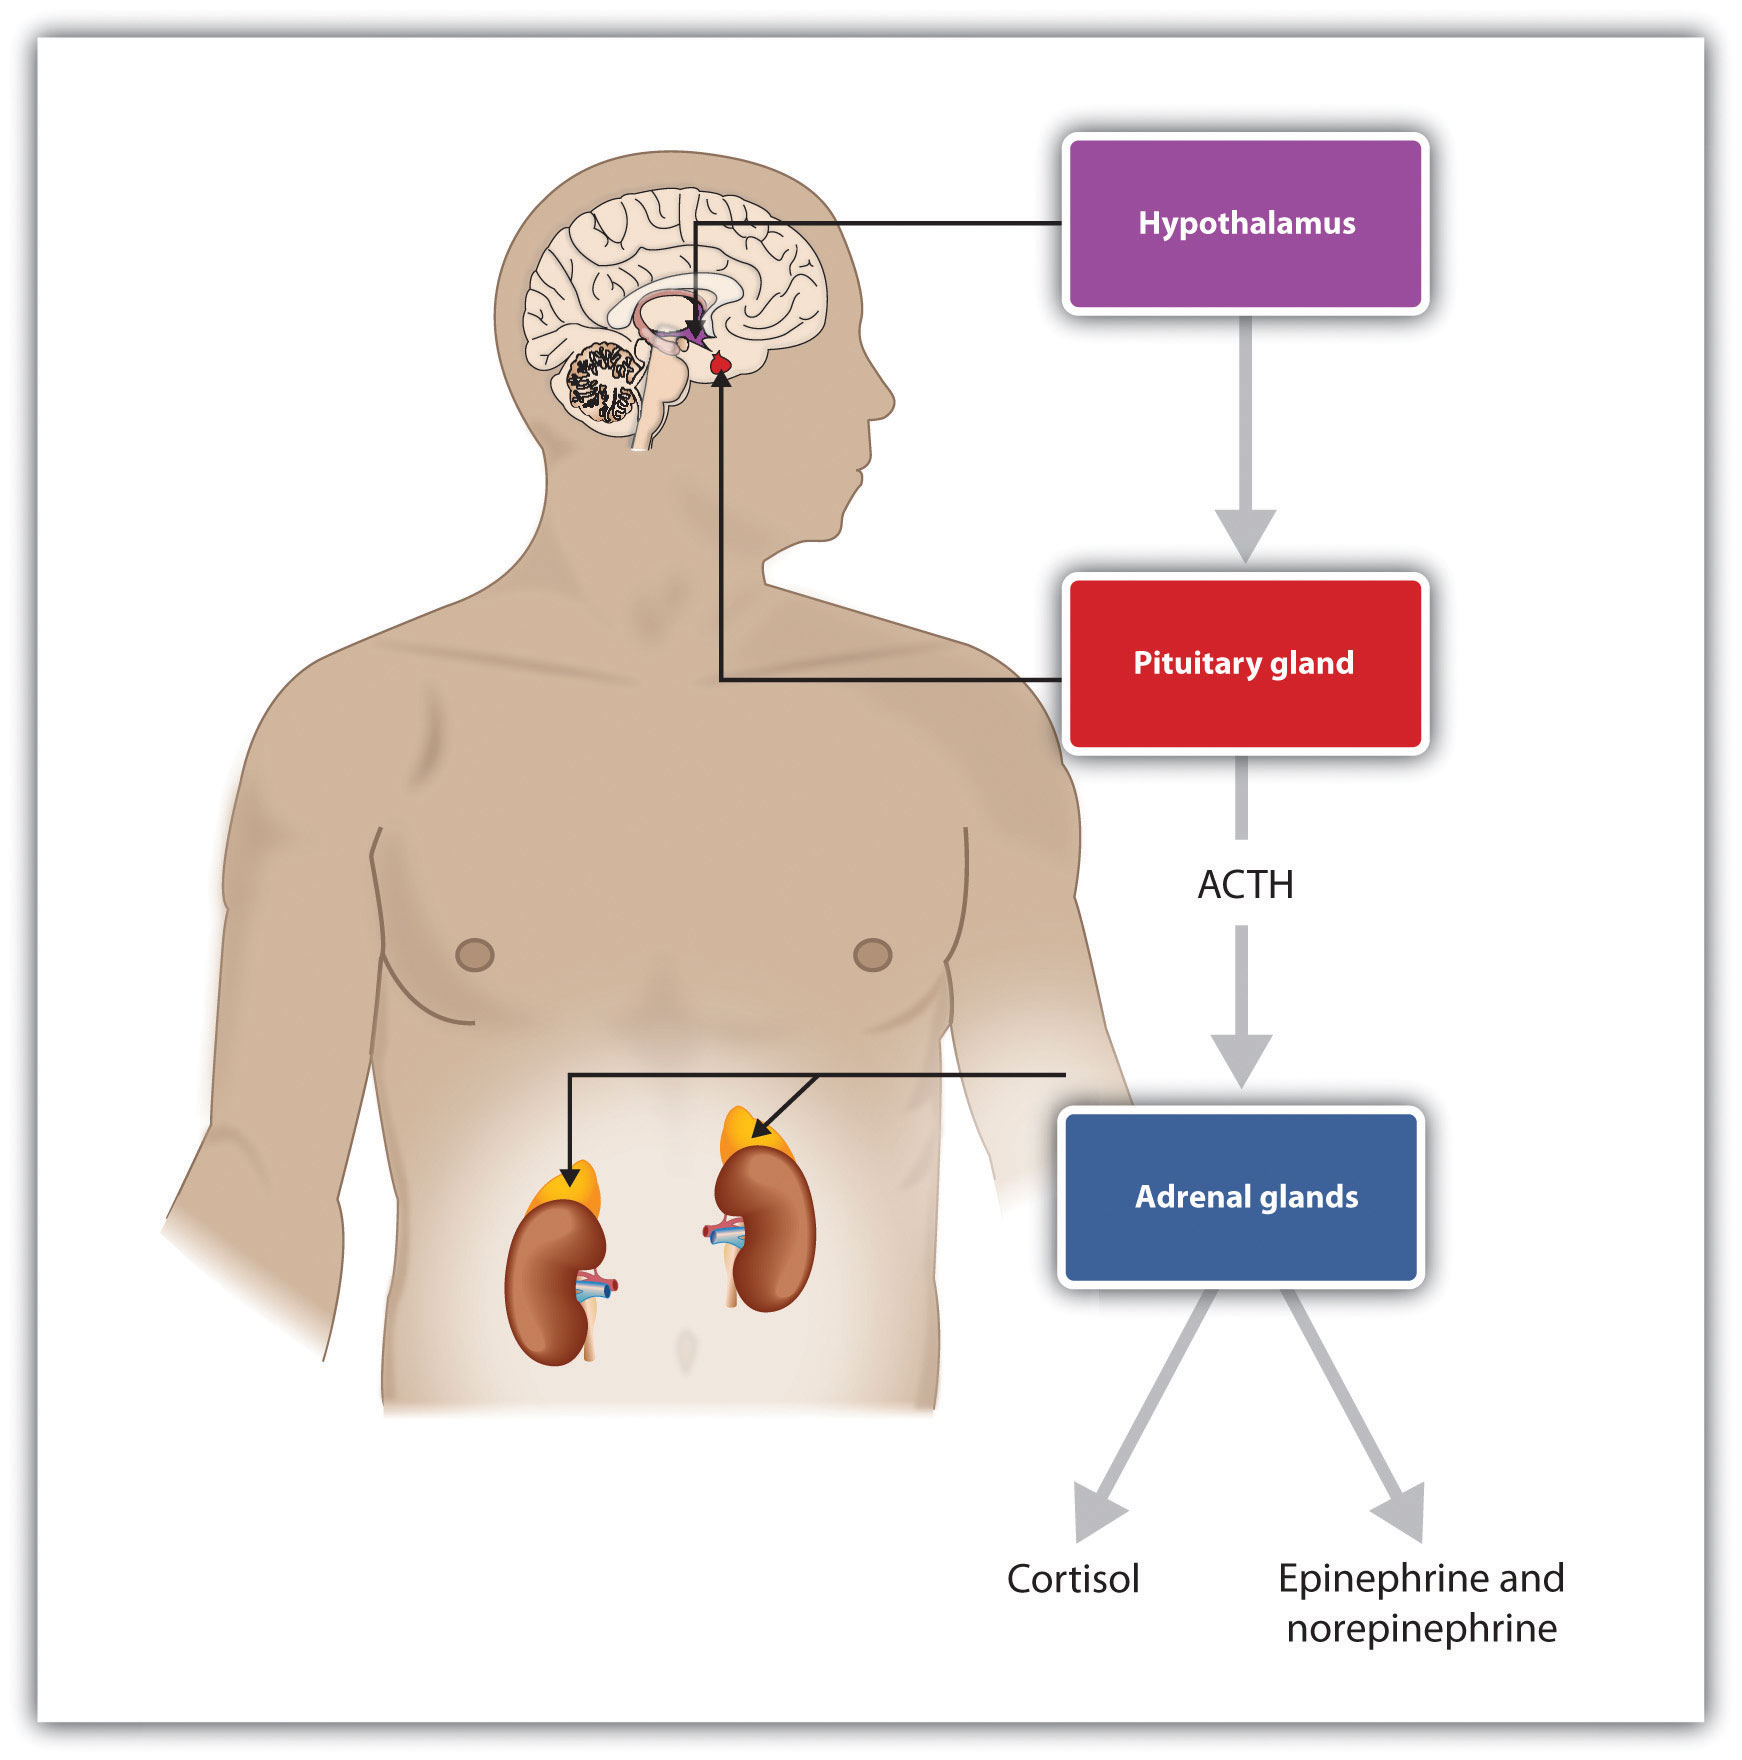 Stress activates the HPA axis. The result is the secretion of epinephrine, norepinephrine, and cortisol